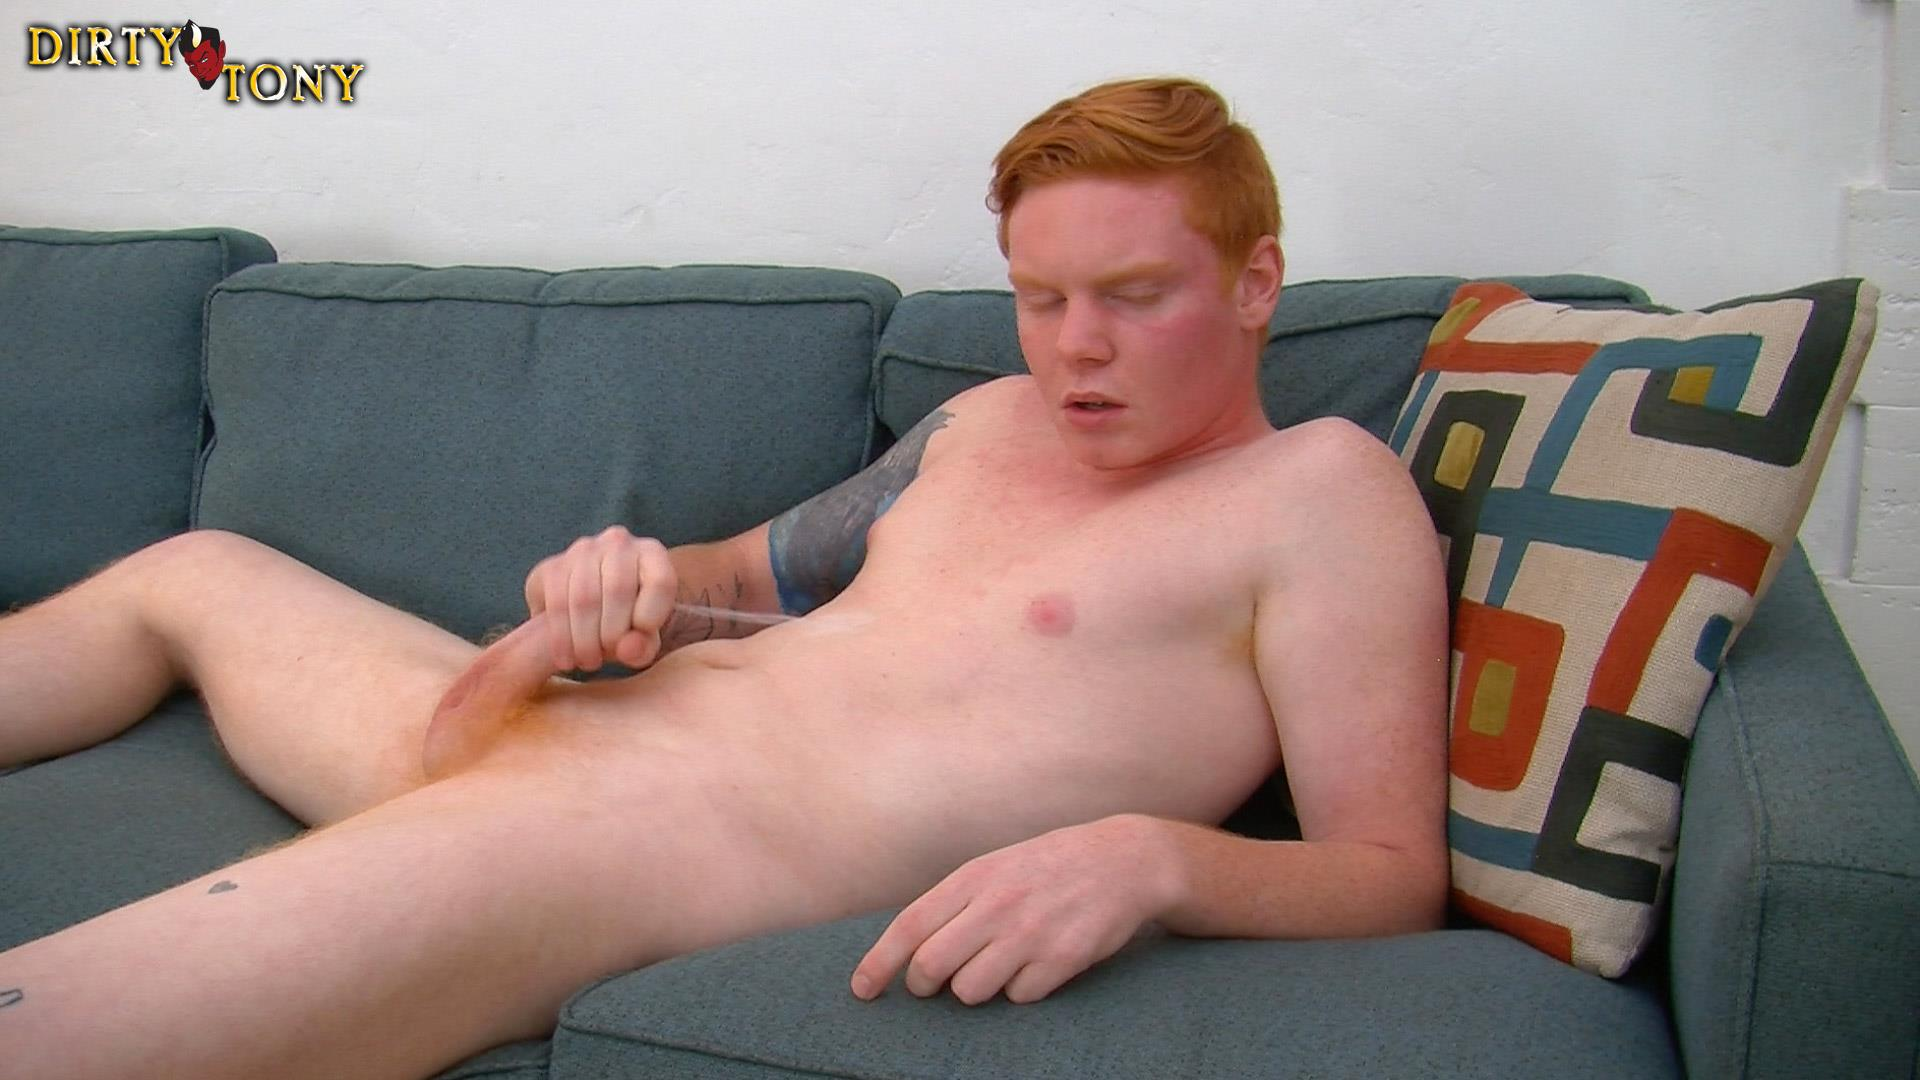 Dirty Tony Max Breeker Redheaded Twink Masturbation Amateur Gay Porn 13 Bisexual 19 Year Old Redheaded Twink Auditions For Gay Porn